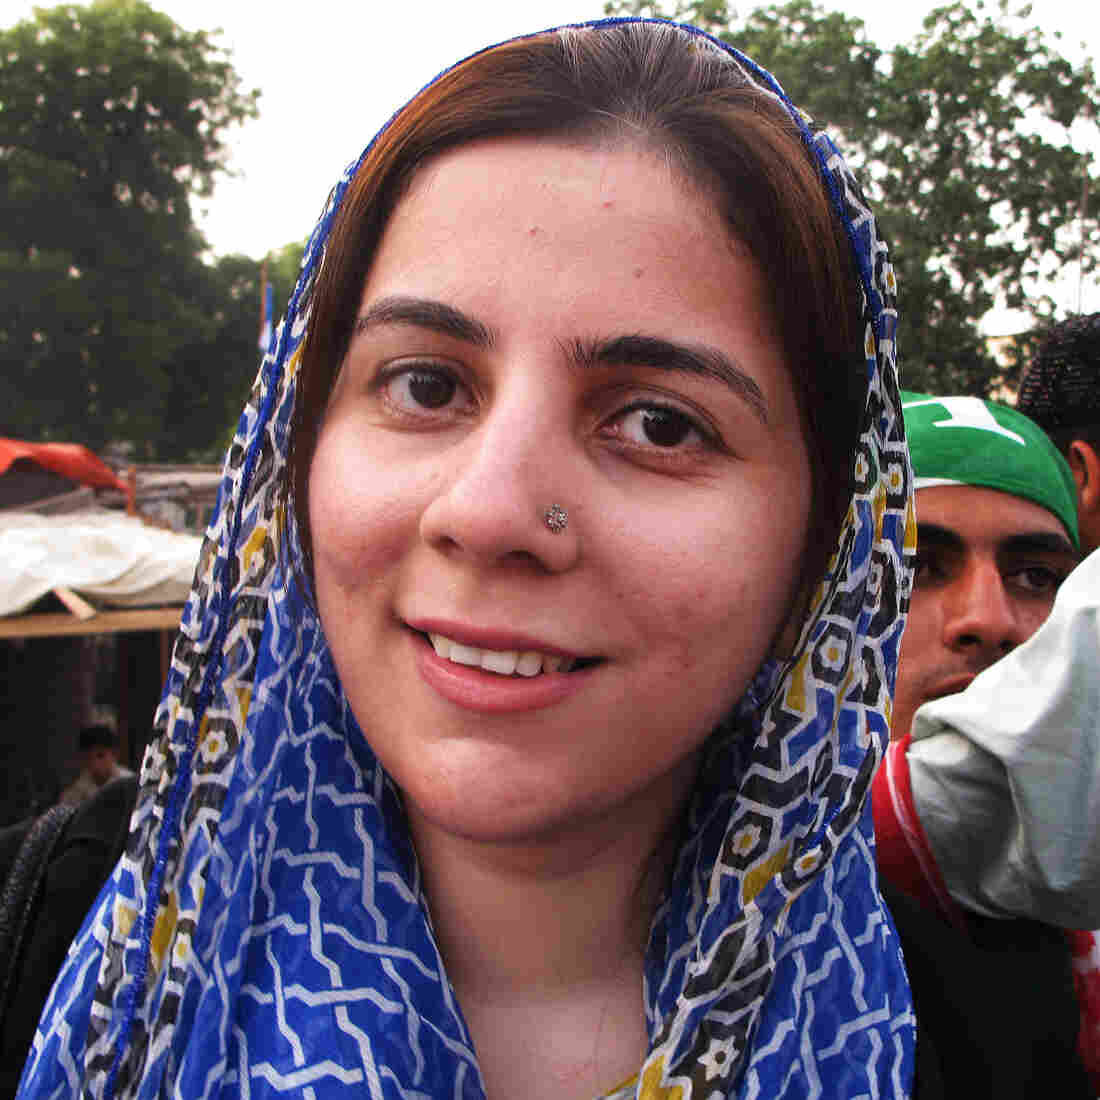 Pakistani Women Still Struggle For A Voice In Politics